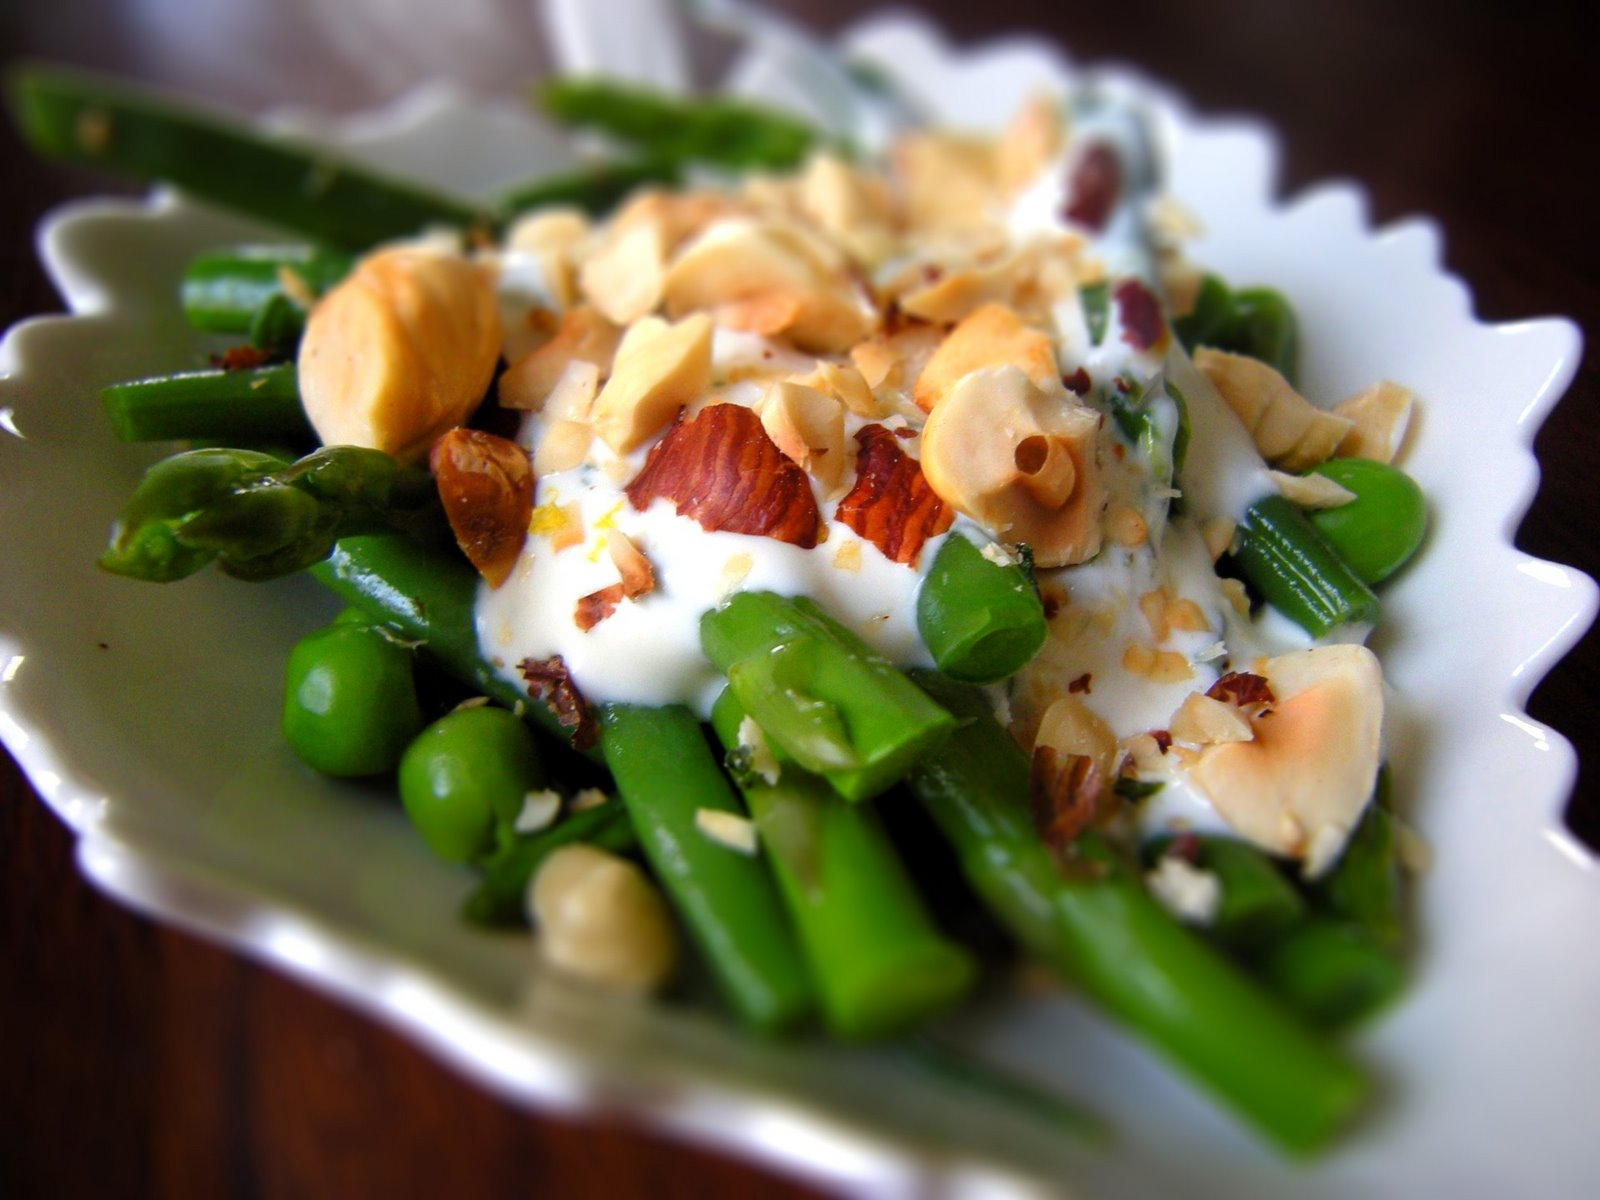 Crafty Lass: Green Vegetable Salad with Creamy Tarragon Dressing